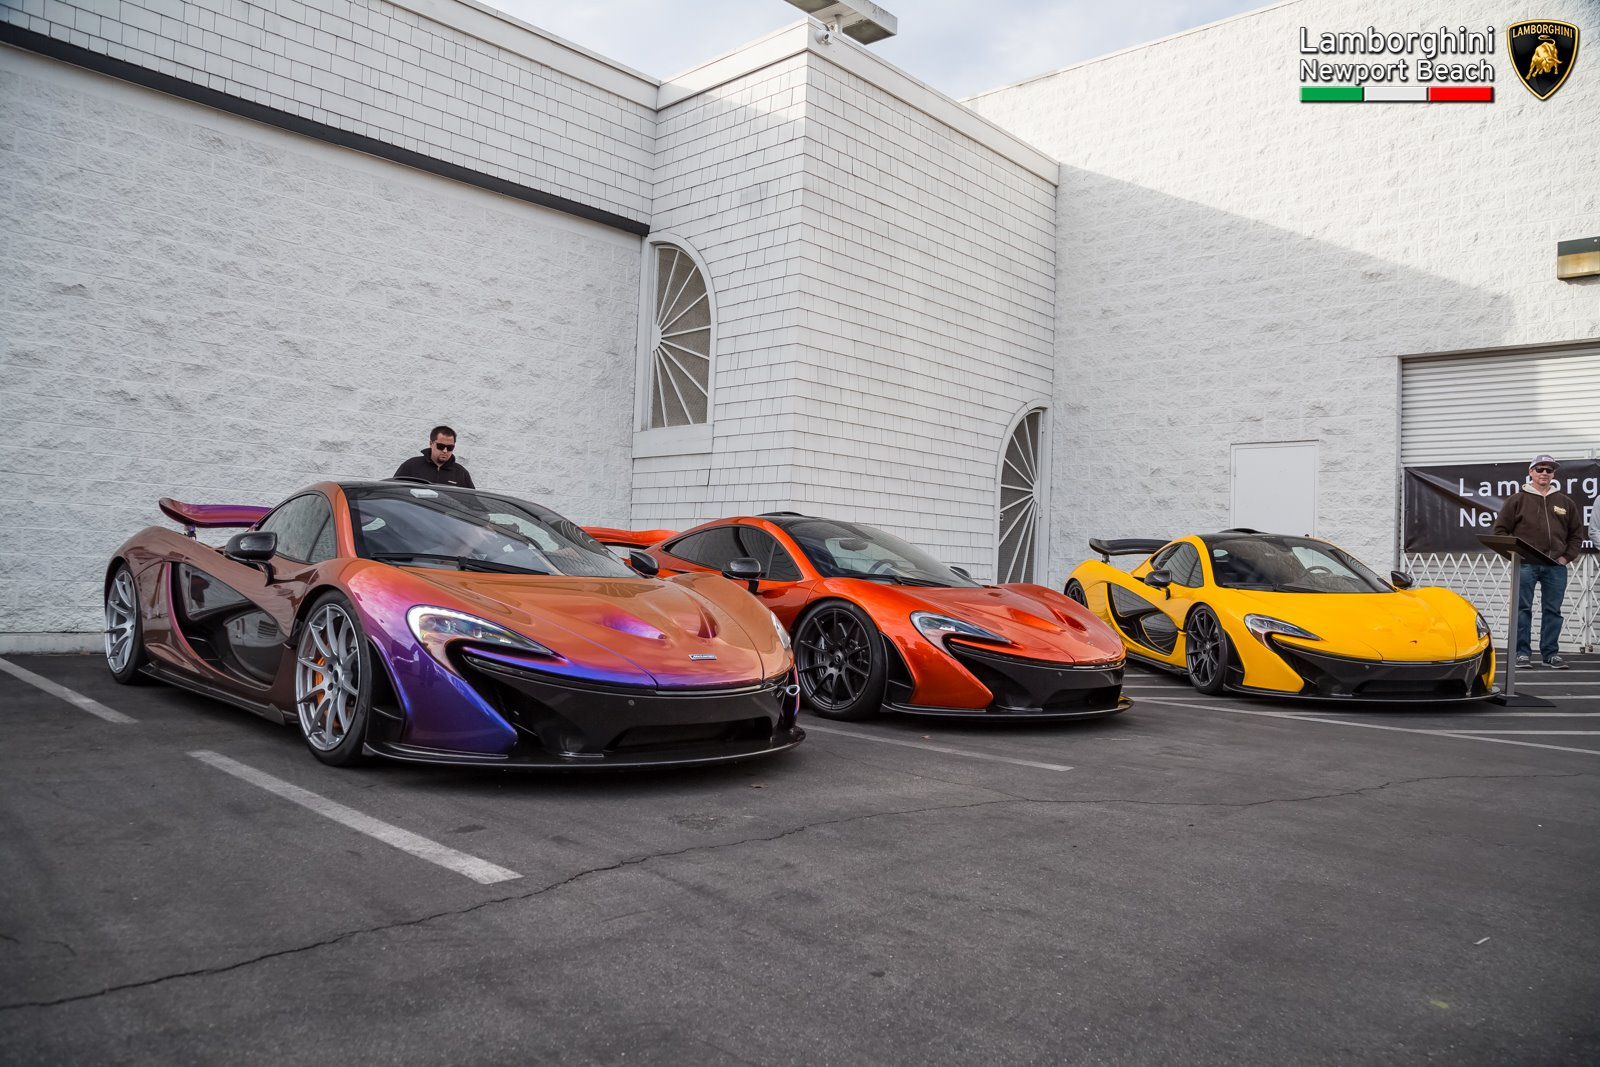 Lamborghini Newport Beach >> Lamborghini Newport Beach Kicks Off 2016 With Supercar Orgy